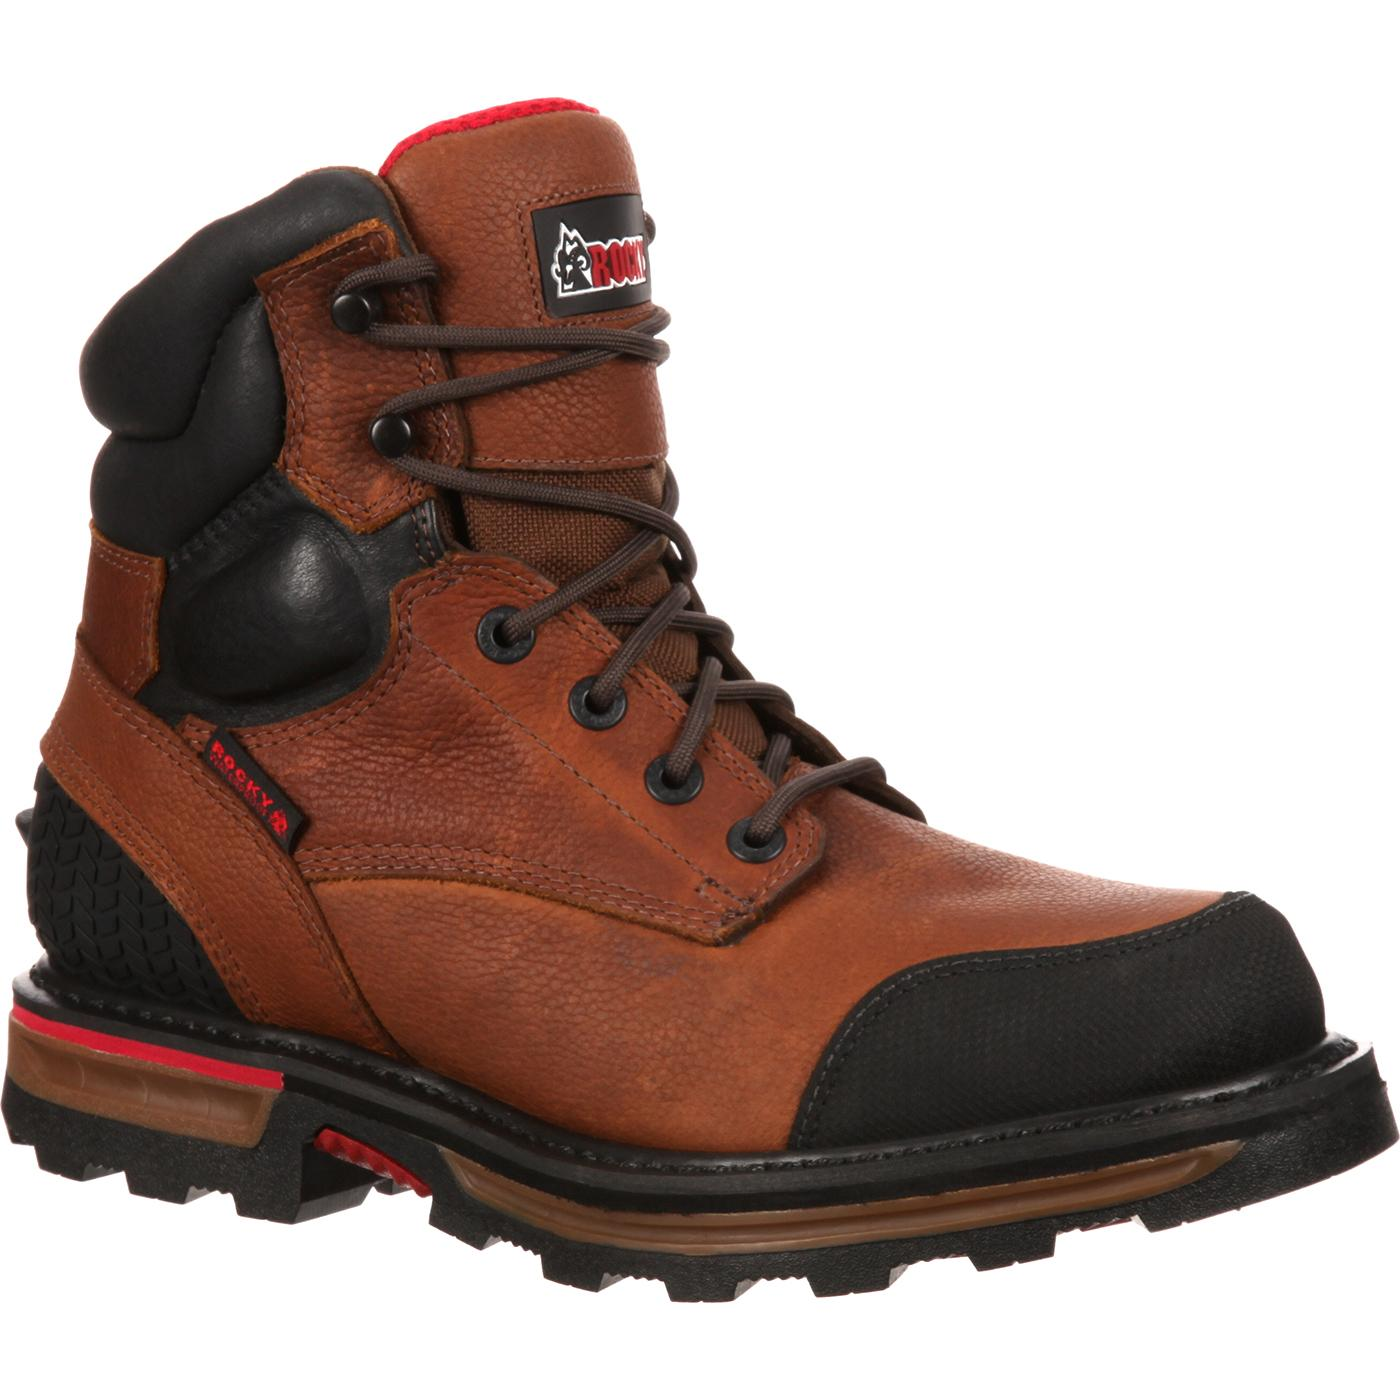 rocky elements dirt steel toe waterproof work boot rkyk074